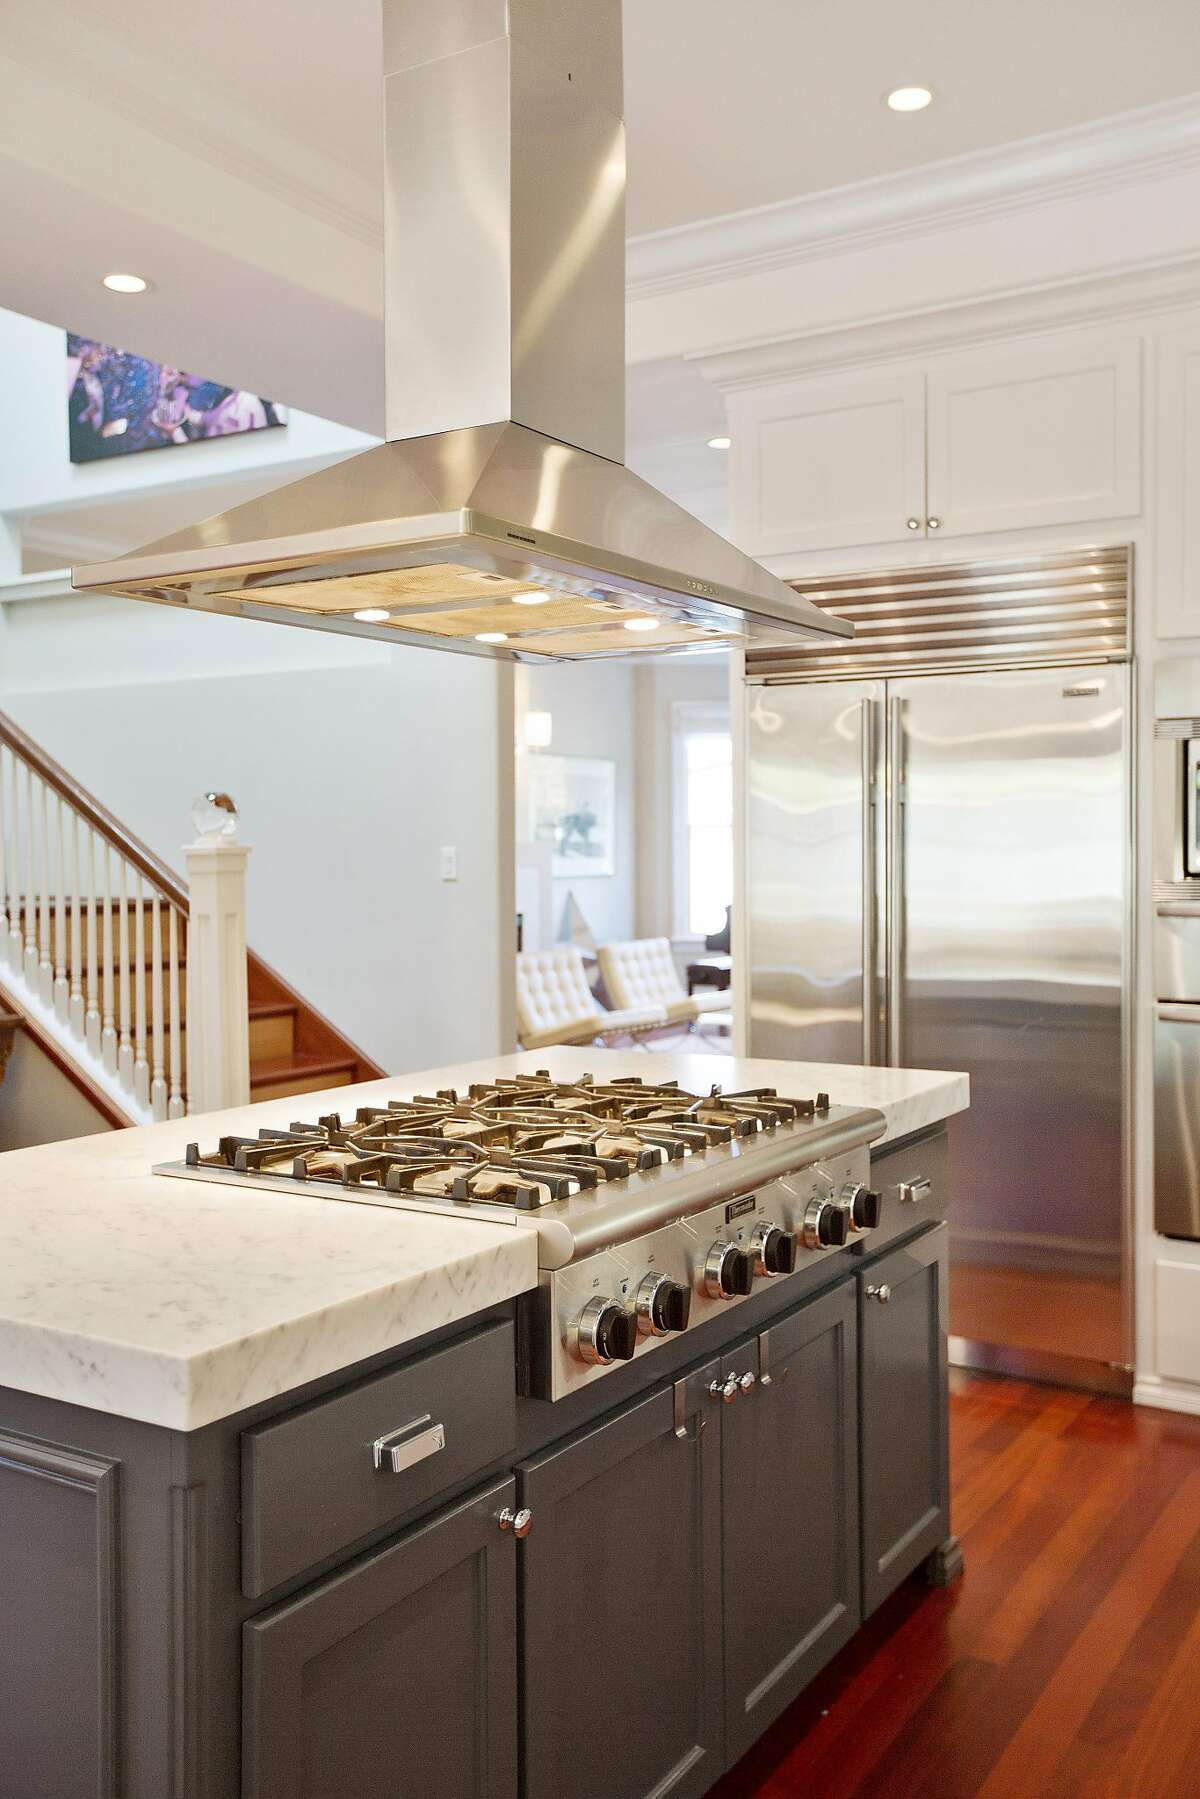 The kitchen revolves around an island with a built-in cooktop.